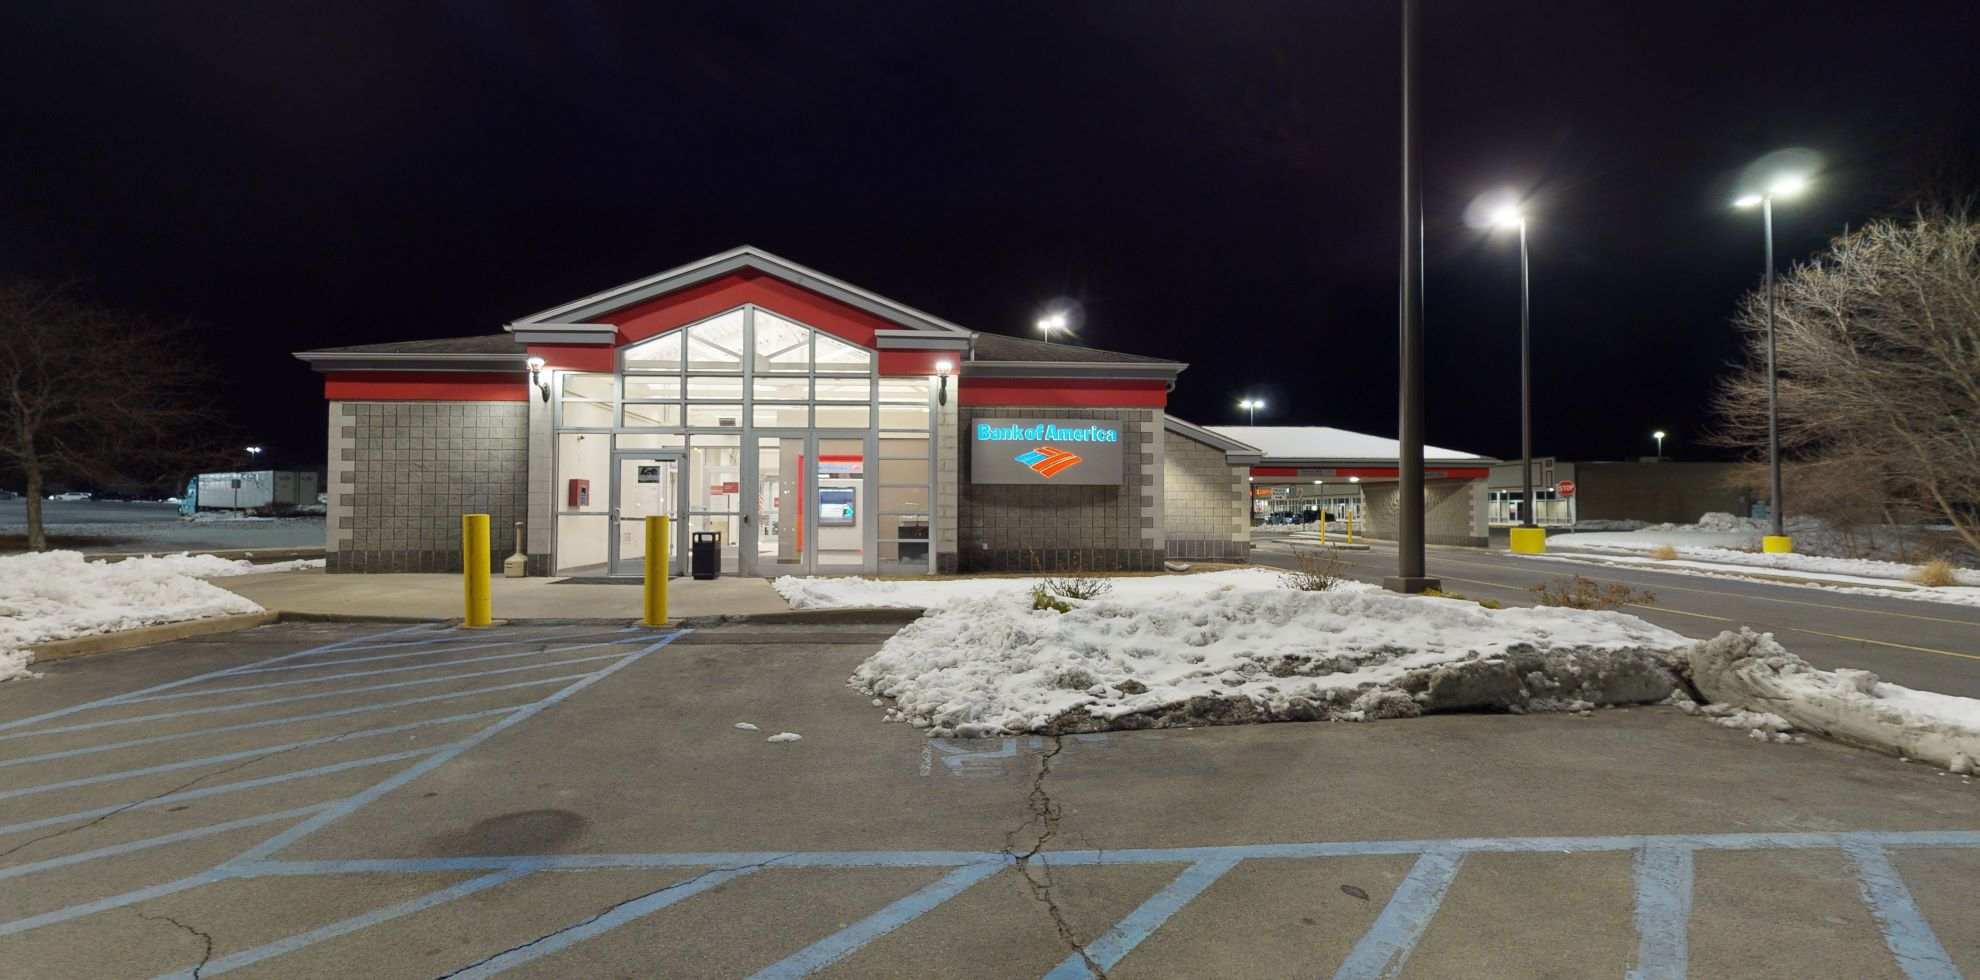 Bank of America financial center with drive-thru ATM   1428 Altamont Ave, Schenectady, NY 12303